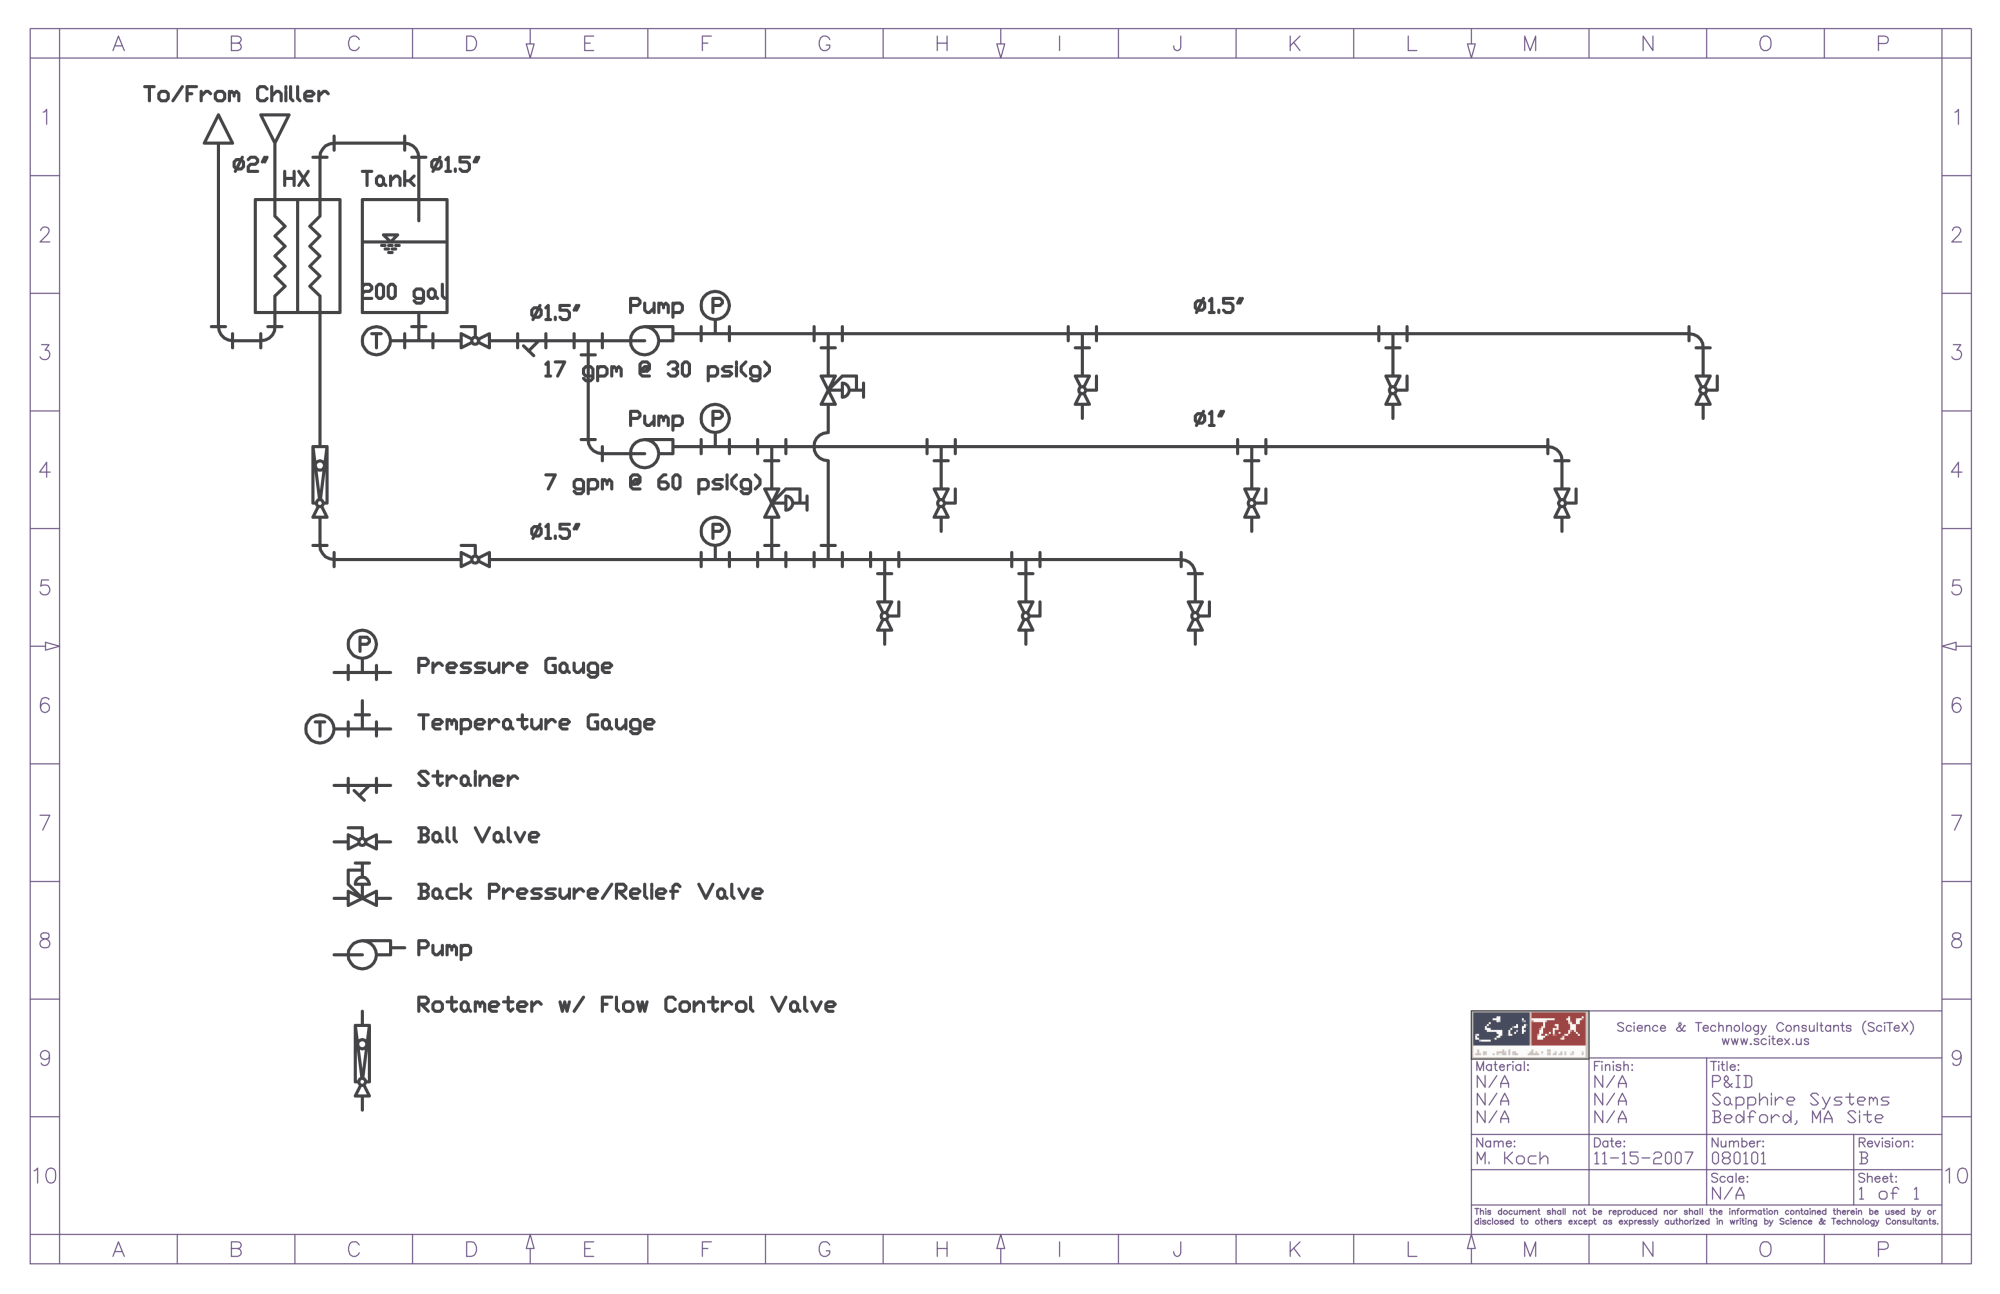 hight resolution of the image shows the piping instrumentation diagram p id that resulted from this effort sapphire systems inc